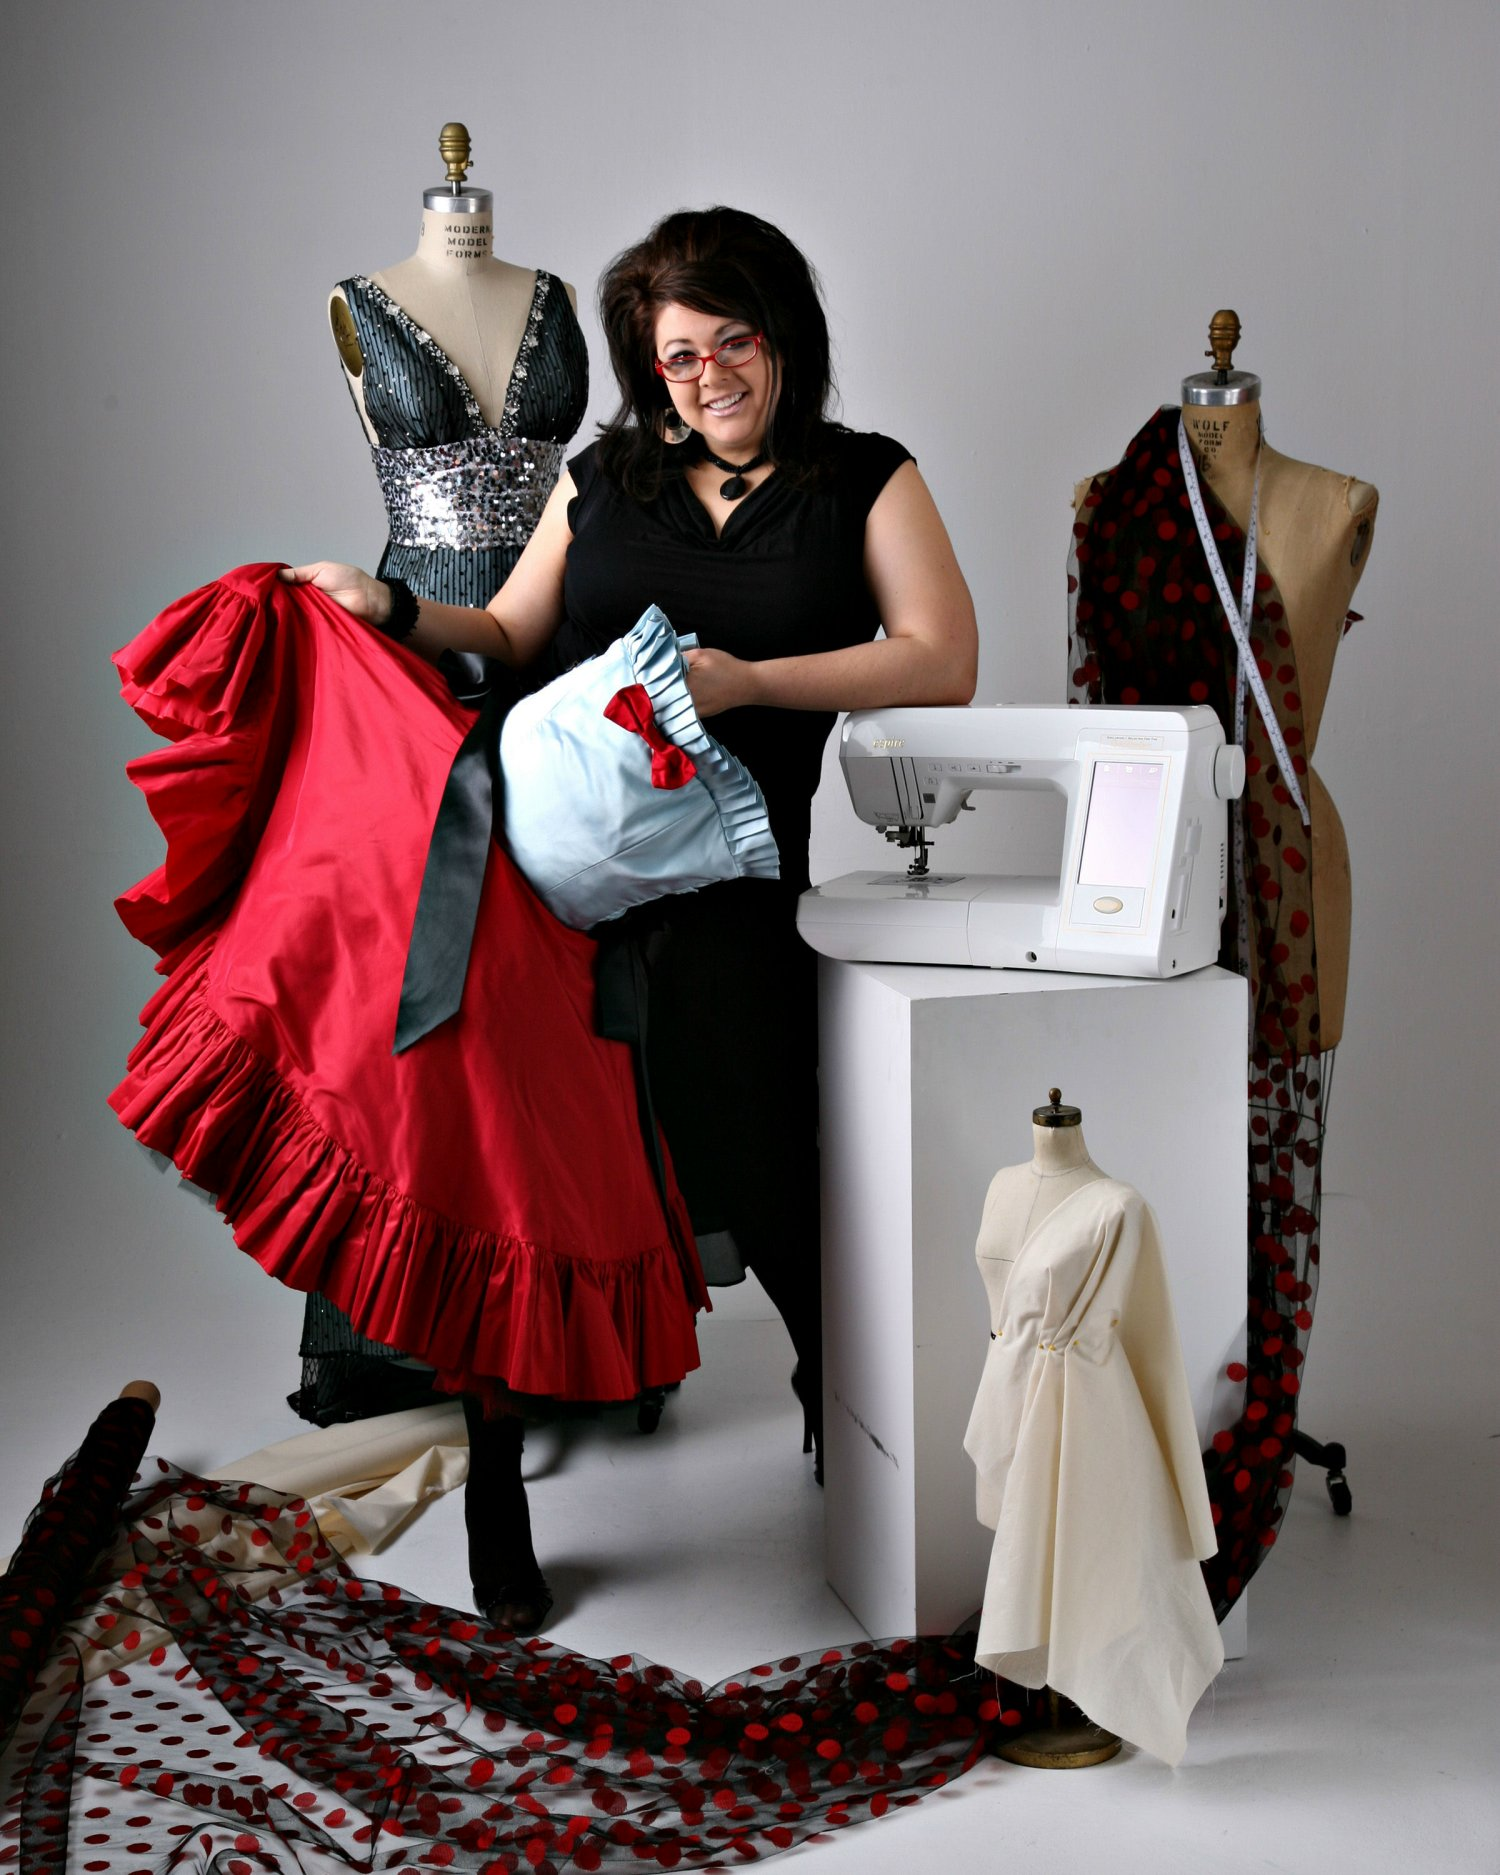 tailormade for your creative side american sewing expo